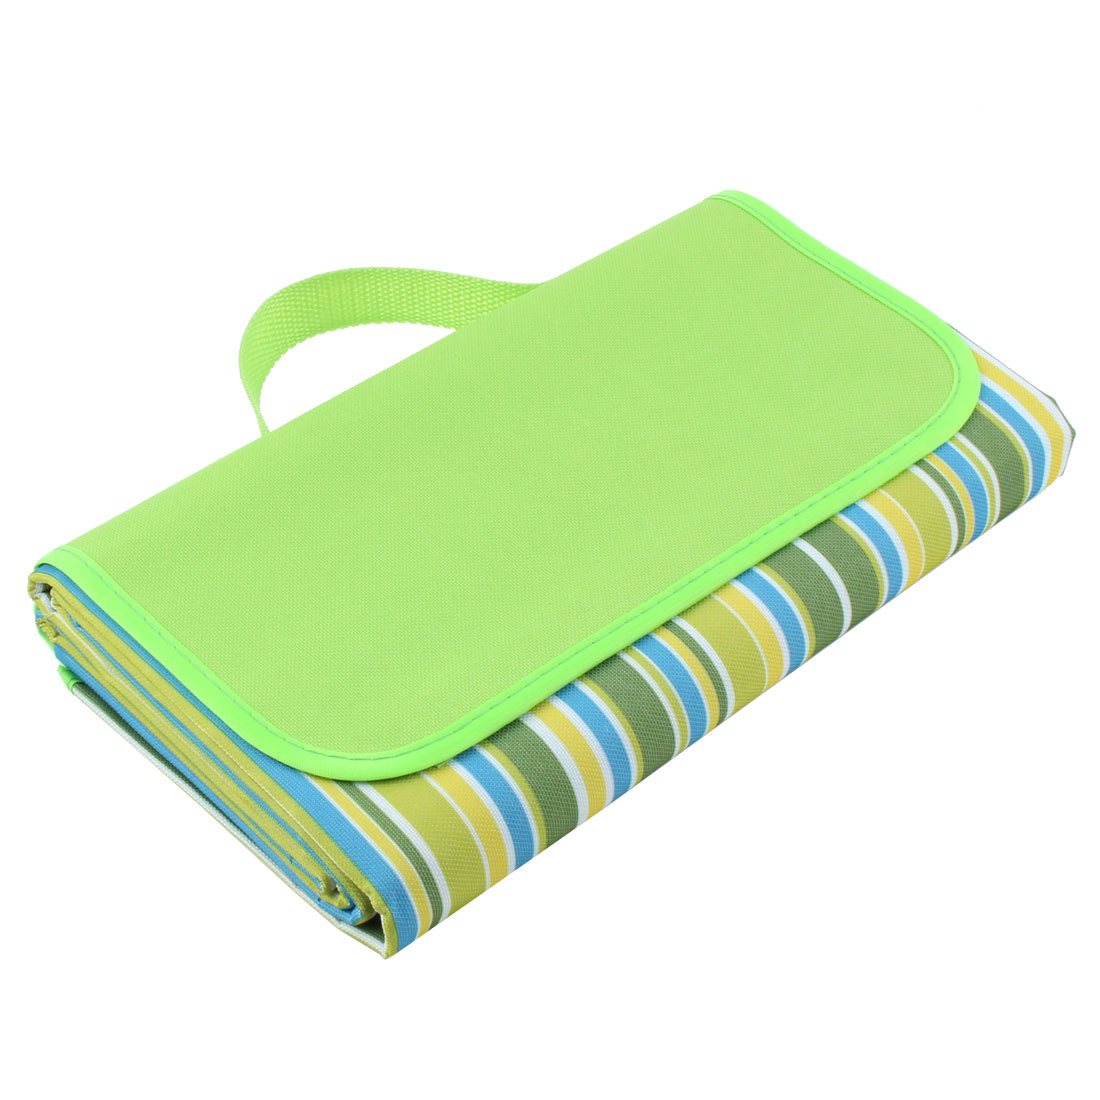 Hiking Foldable Picnic Mat Camping Blanket Travel Rug Light Green 200cm x 200cm